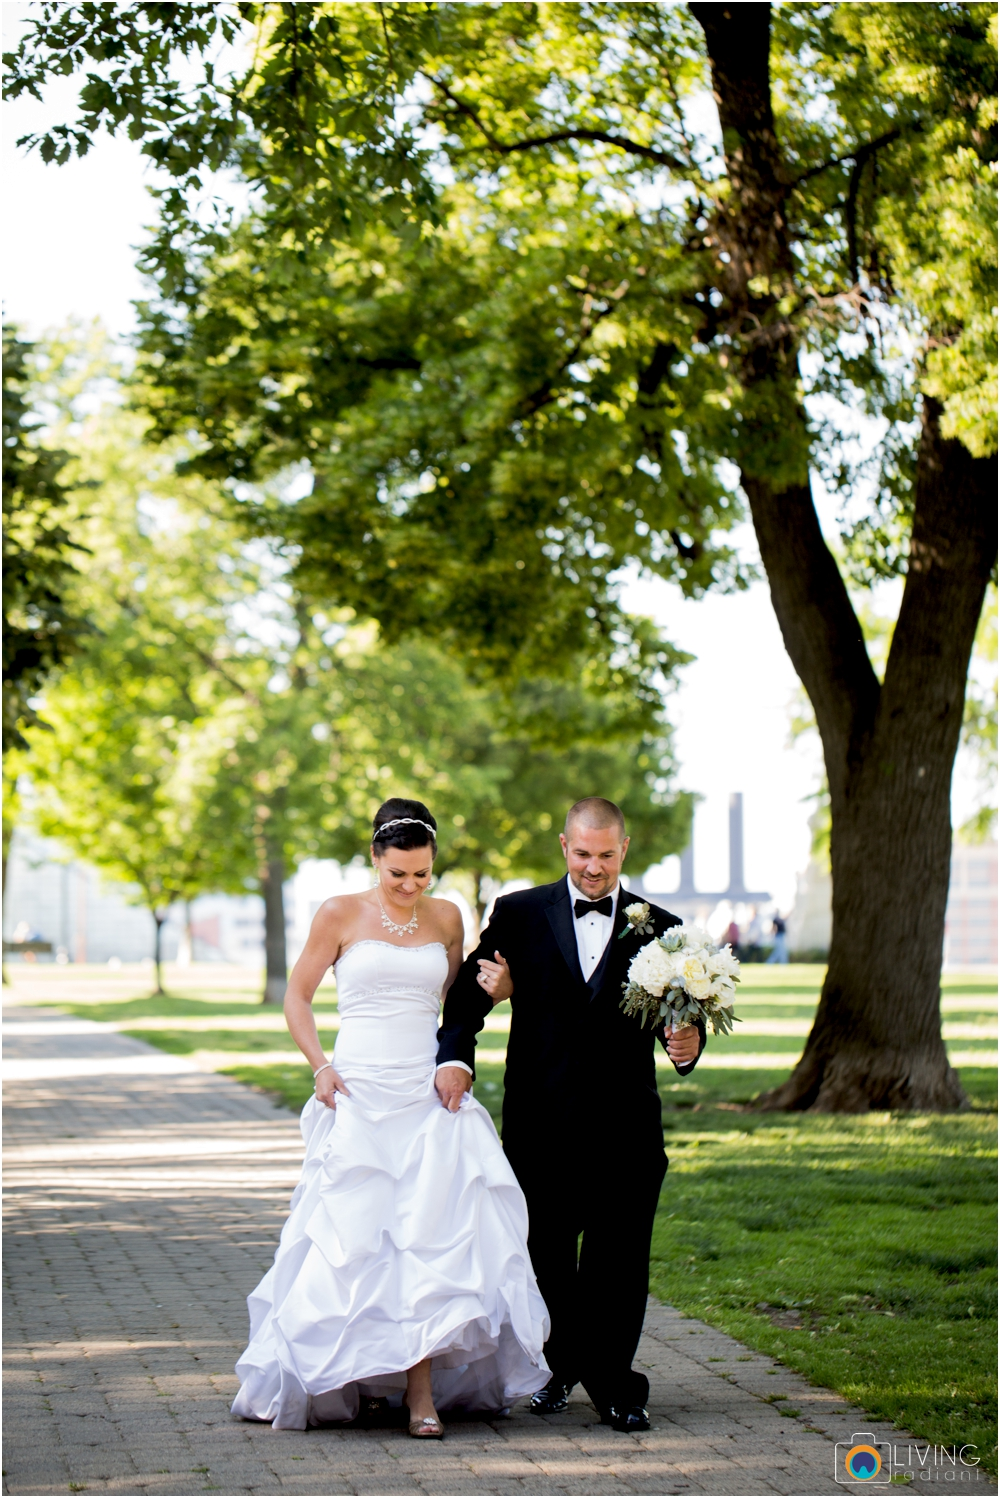 jessica-kevin-mcnally-AVAM-american-visionary-art-museum-downtown-federal-hill-baltimore-inner-harbor-wedding-living-radiant-photography-maggie-patrick-nolan_0051.jpg